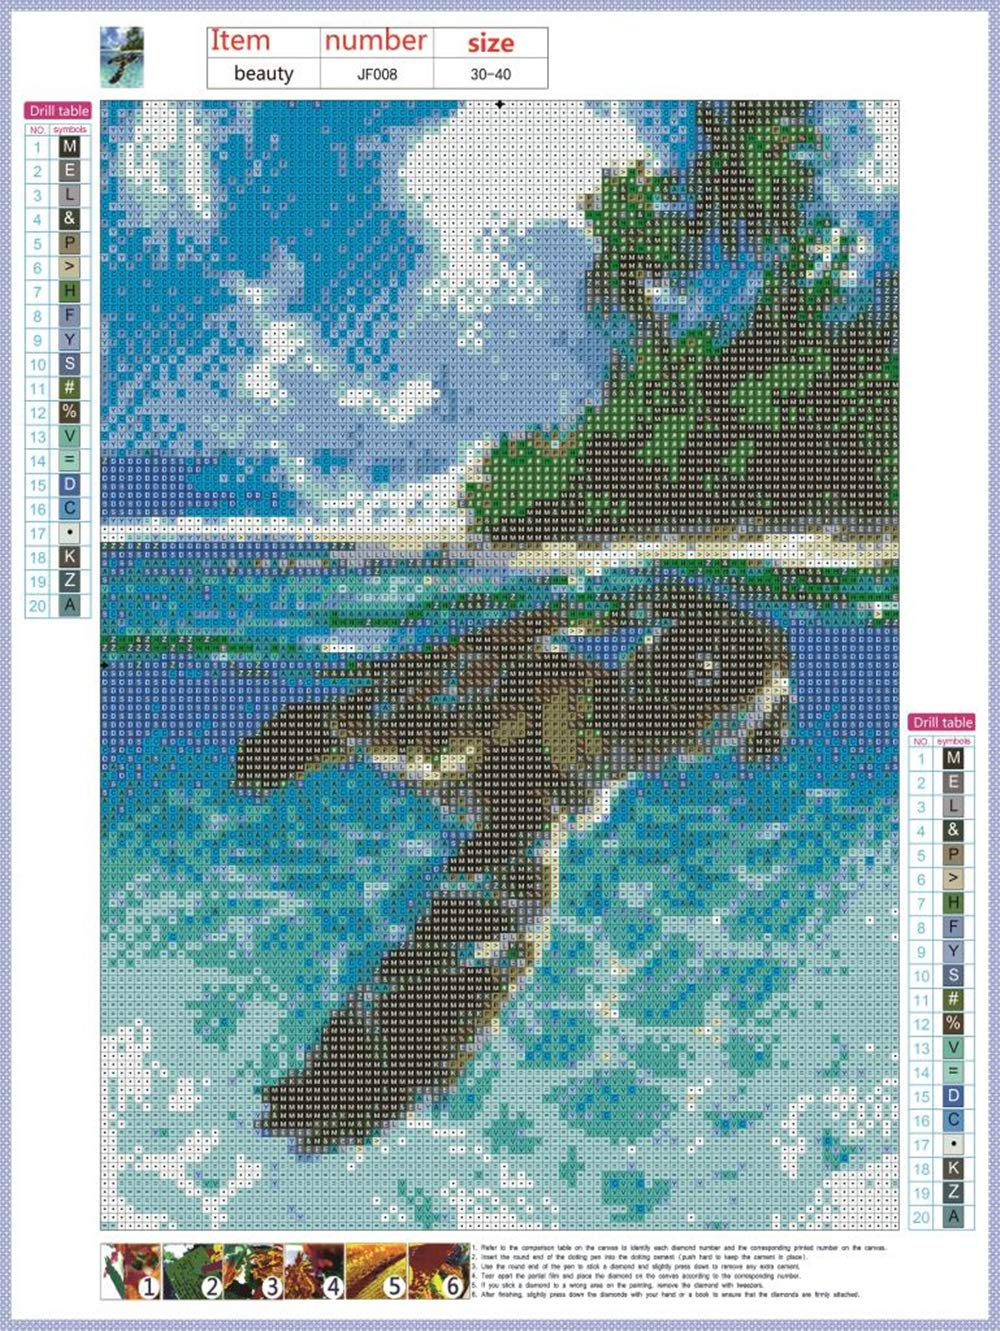 DIY 5D Diamond Painting Beach and Turtle,Canvas Wall Art Square,Adult Craft Kits 5D Diamond Art Rhinestone Embroidery Cross Stitch Art Crafts Supply Canvas Wall Ornament 12x16 inches